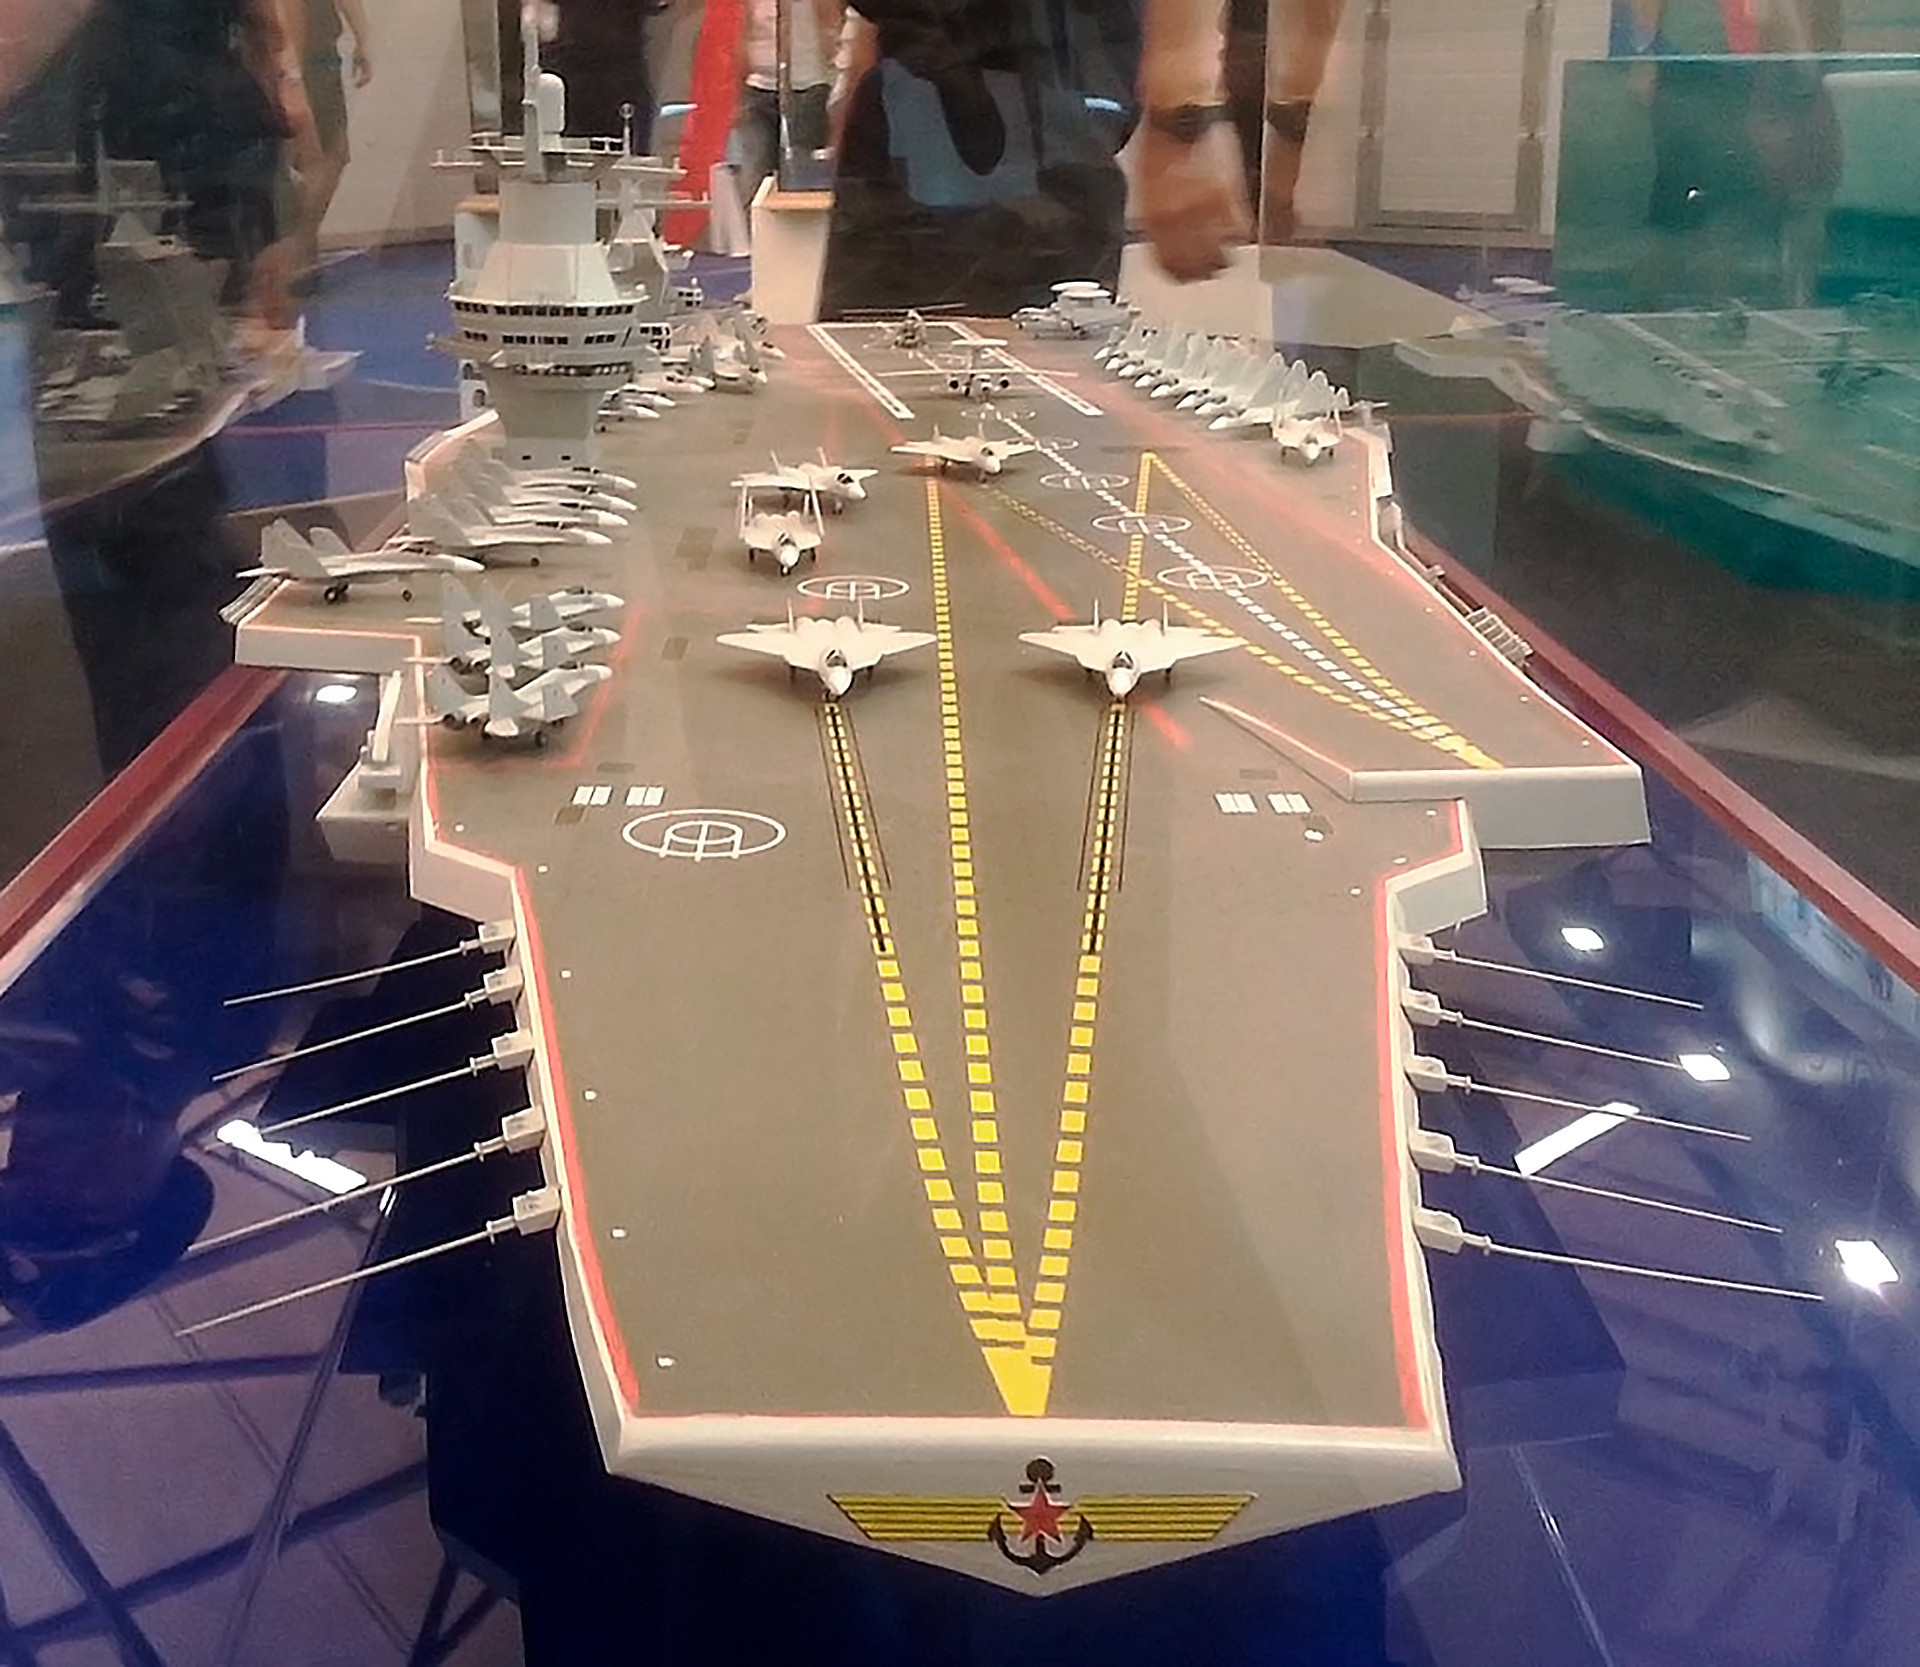 """""""Storm"""" will be built according to the classic air-carrier canons - there will be no additional weapons on deck, apart from fighter jets and bombers. The ship will be guided and defended like all 19 American aircraft carriers - with an entire squadron of battleships and submarines."""